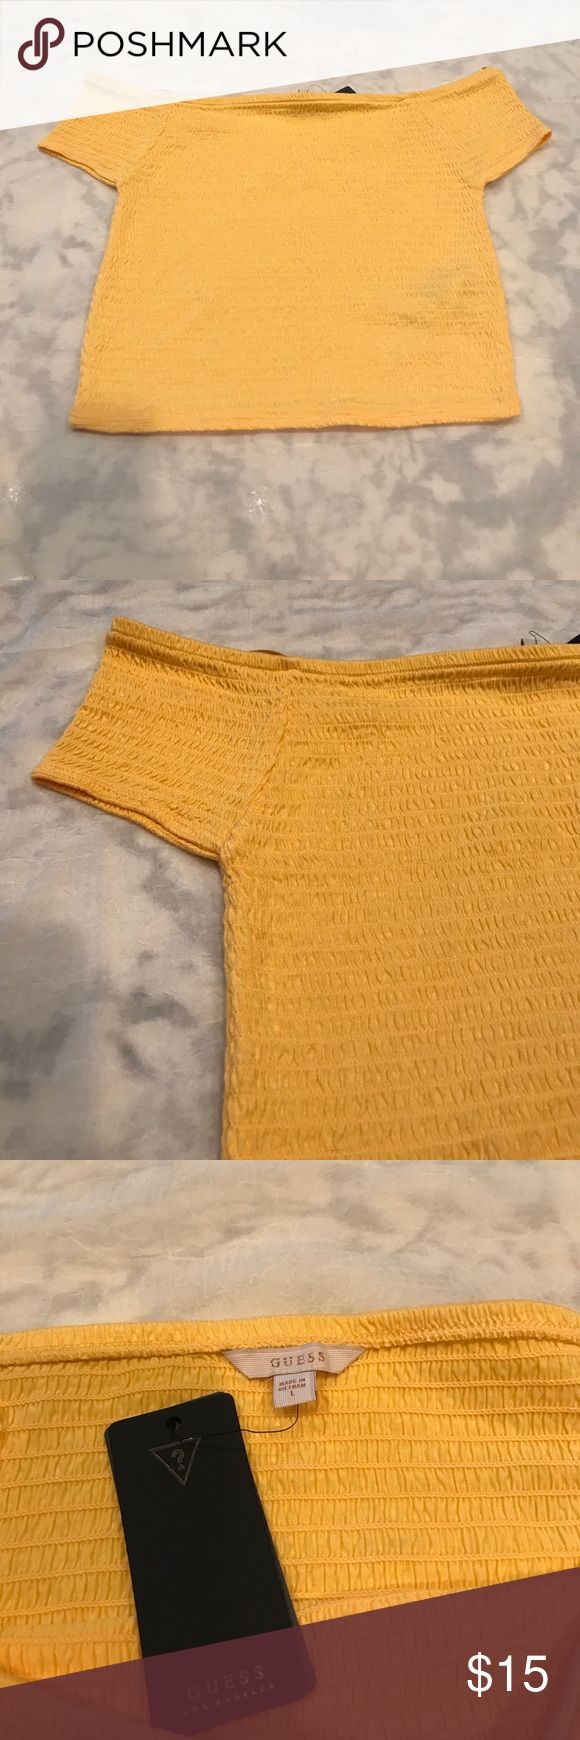 GUESS Smocked Off the Shoulder Crop Top Golden yellow off the shoulder crop smock top. Great summer piece, cool and easy breezy. Lots of stretch. 100% Rayon, exclusive of elastic. ☀️ Guess Tops Crop Tops